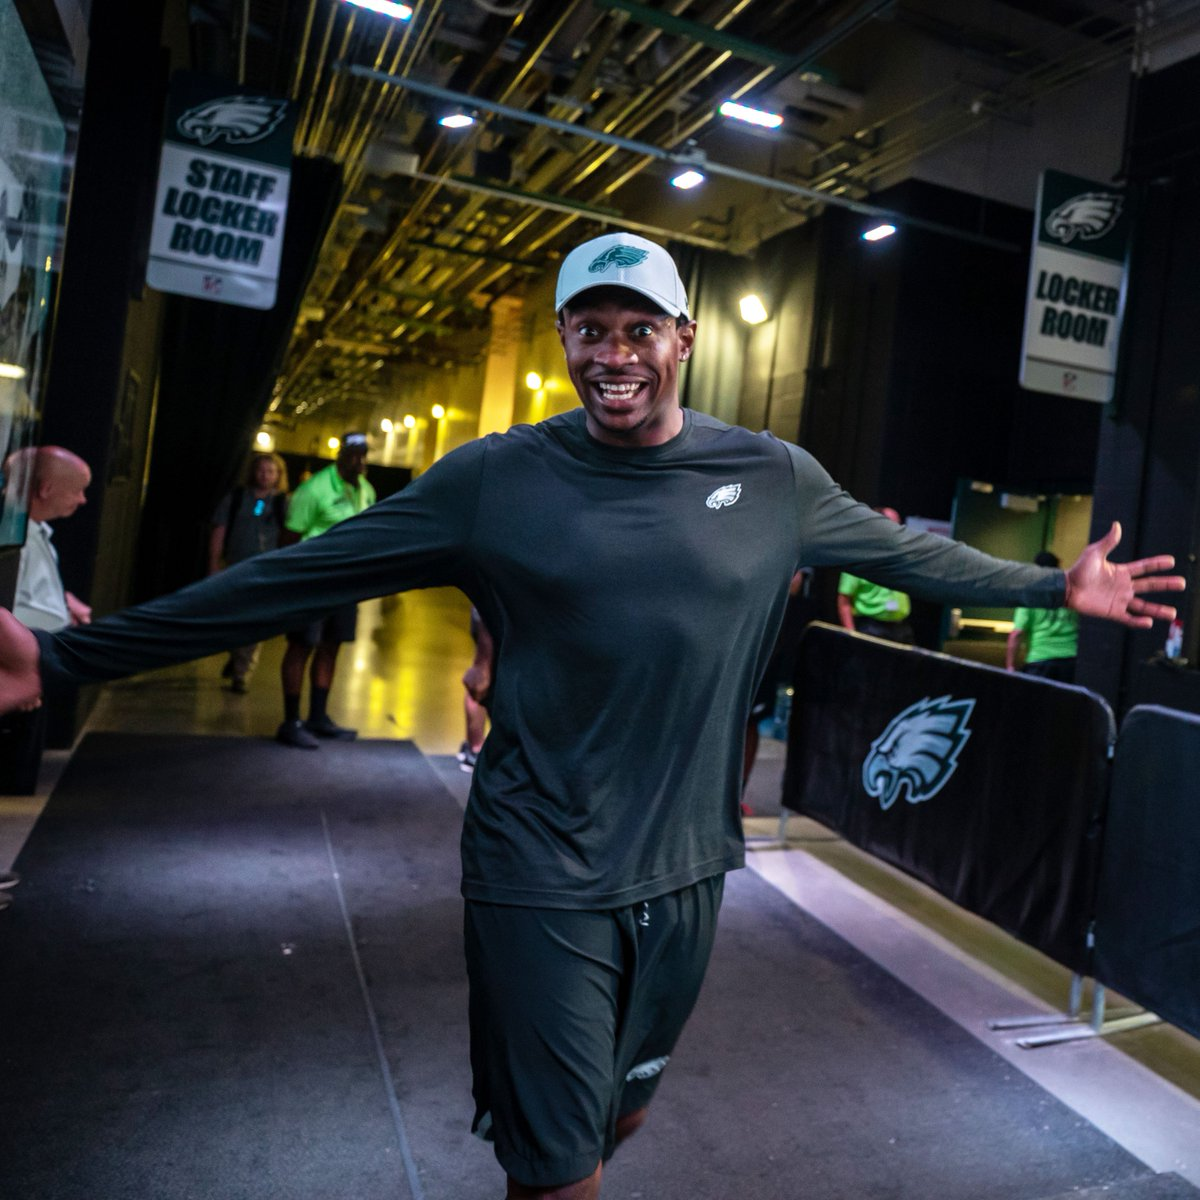 Ready to greet the weekend!   #FridayFeeling | #FlyEaglesFly <br>http://pic.twitter.com/YnL8uGVG2R